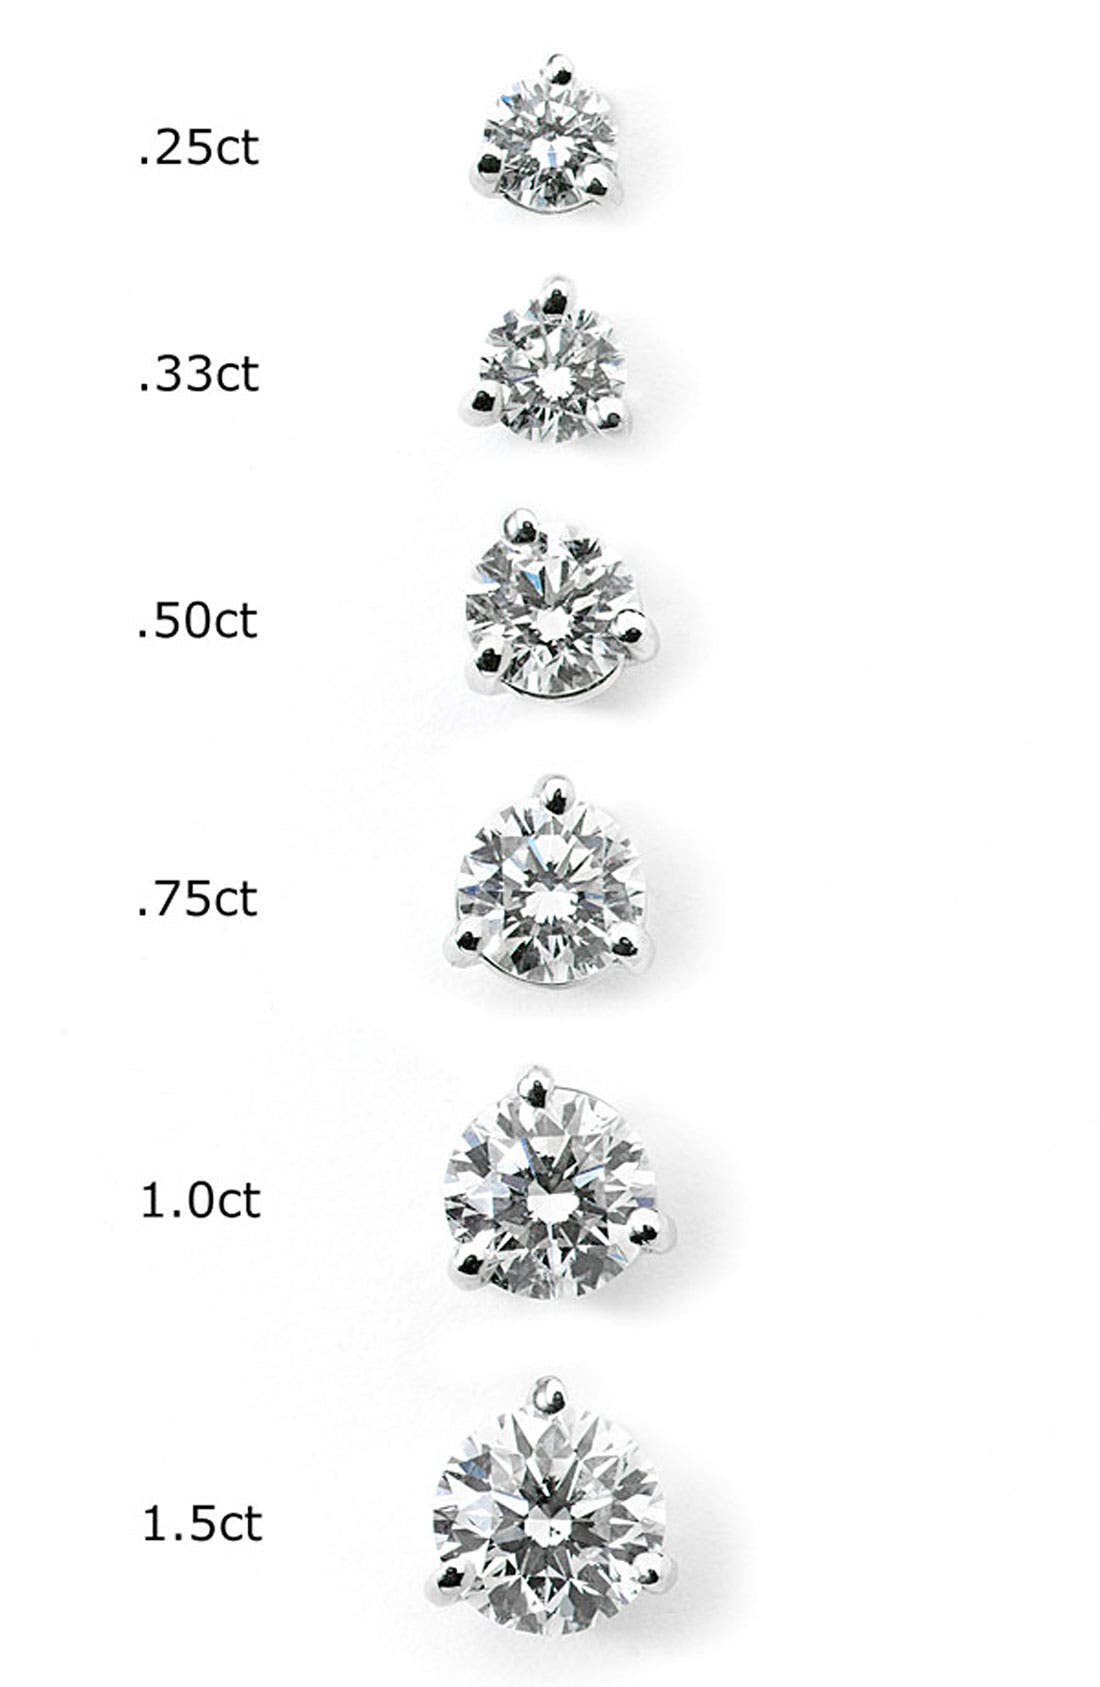 0.25ct tw Diamond & Platinum Stud Earrings,                             Alternate thumbnail 3, color,                             PLATINUM